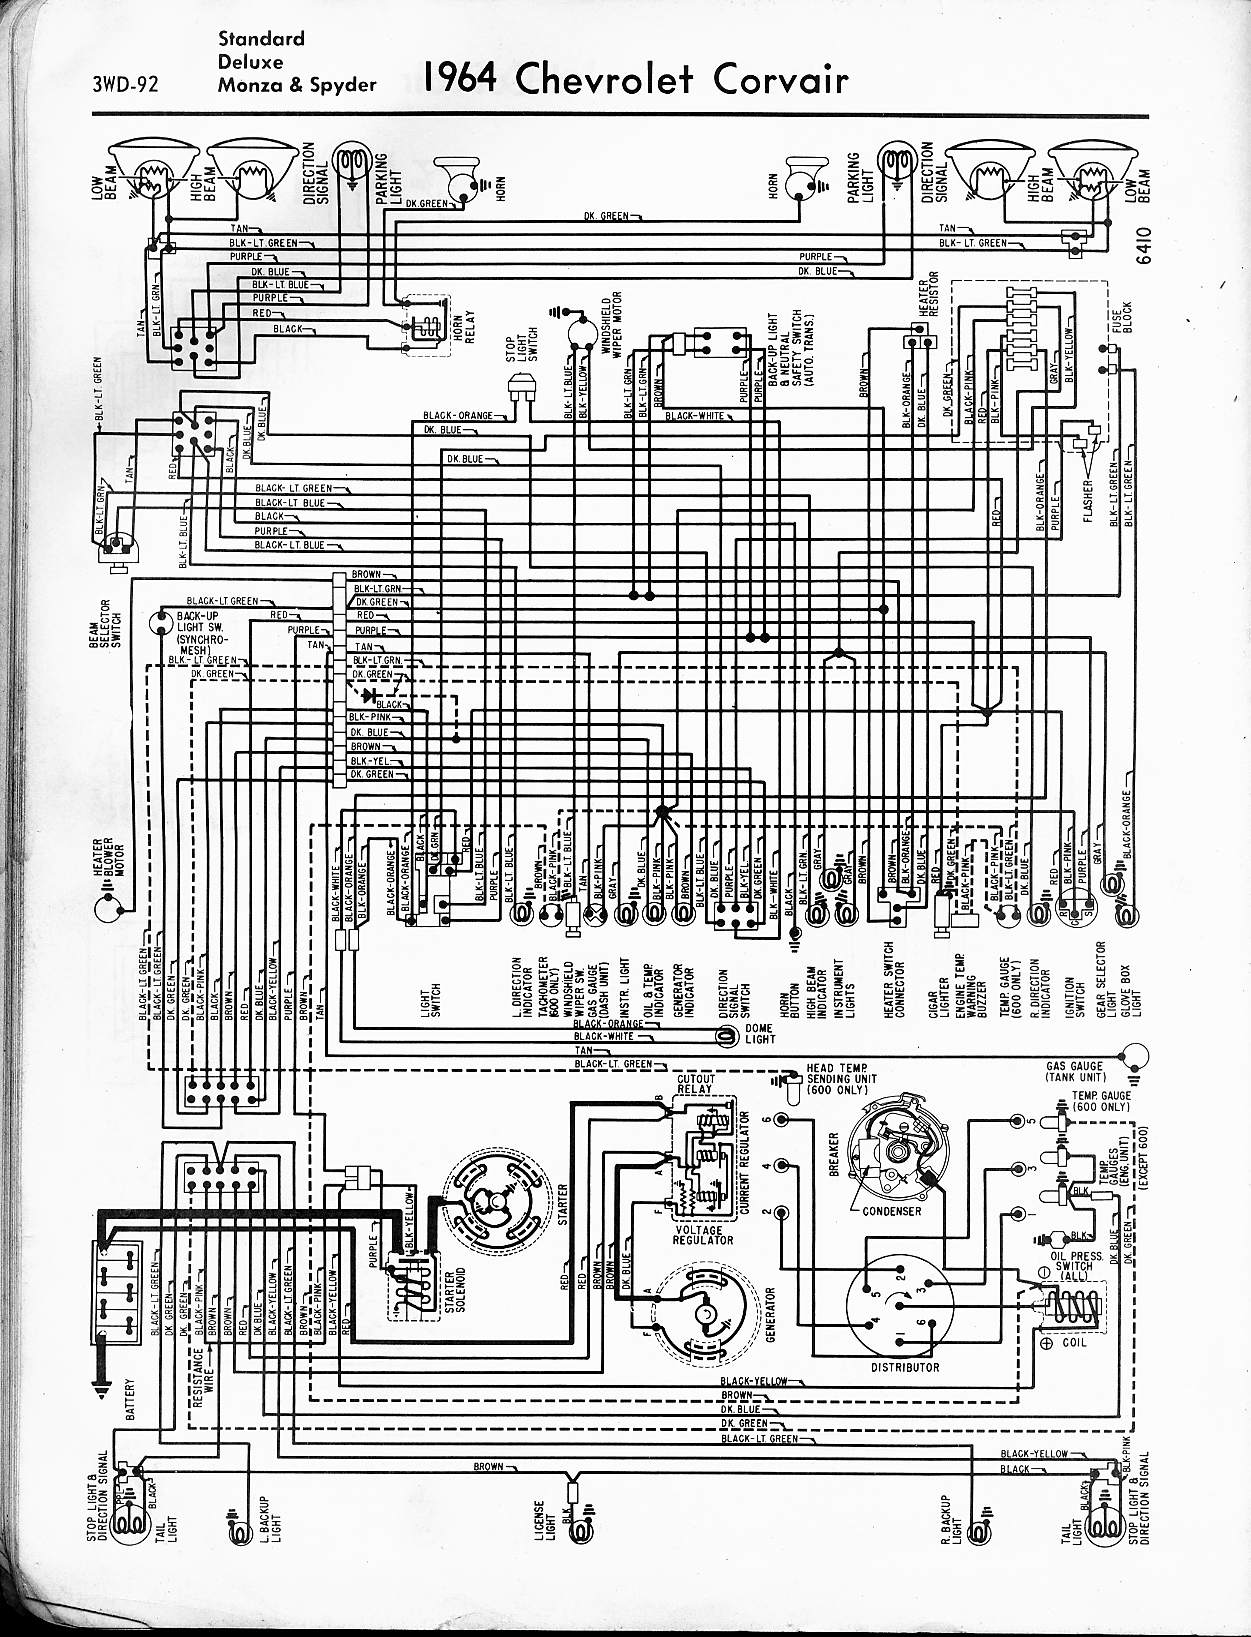 1963 corvair wiring diagram 65 corvair wiring diagram 57 - 65 chevy wiring diagrams #2